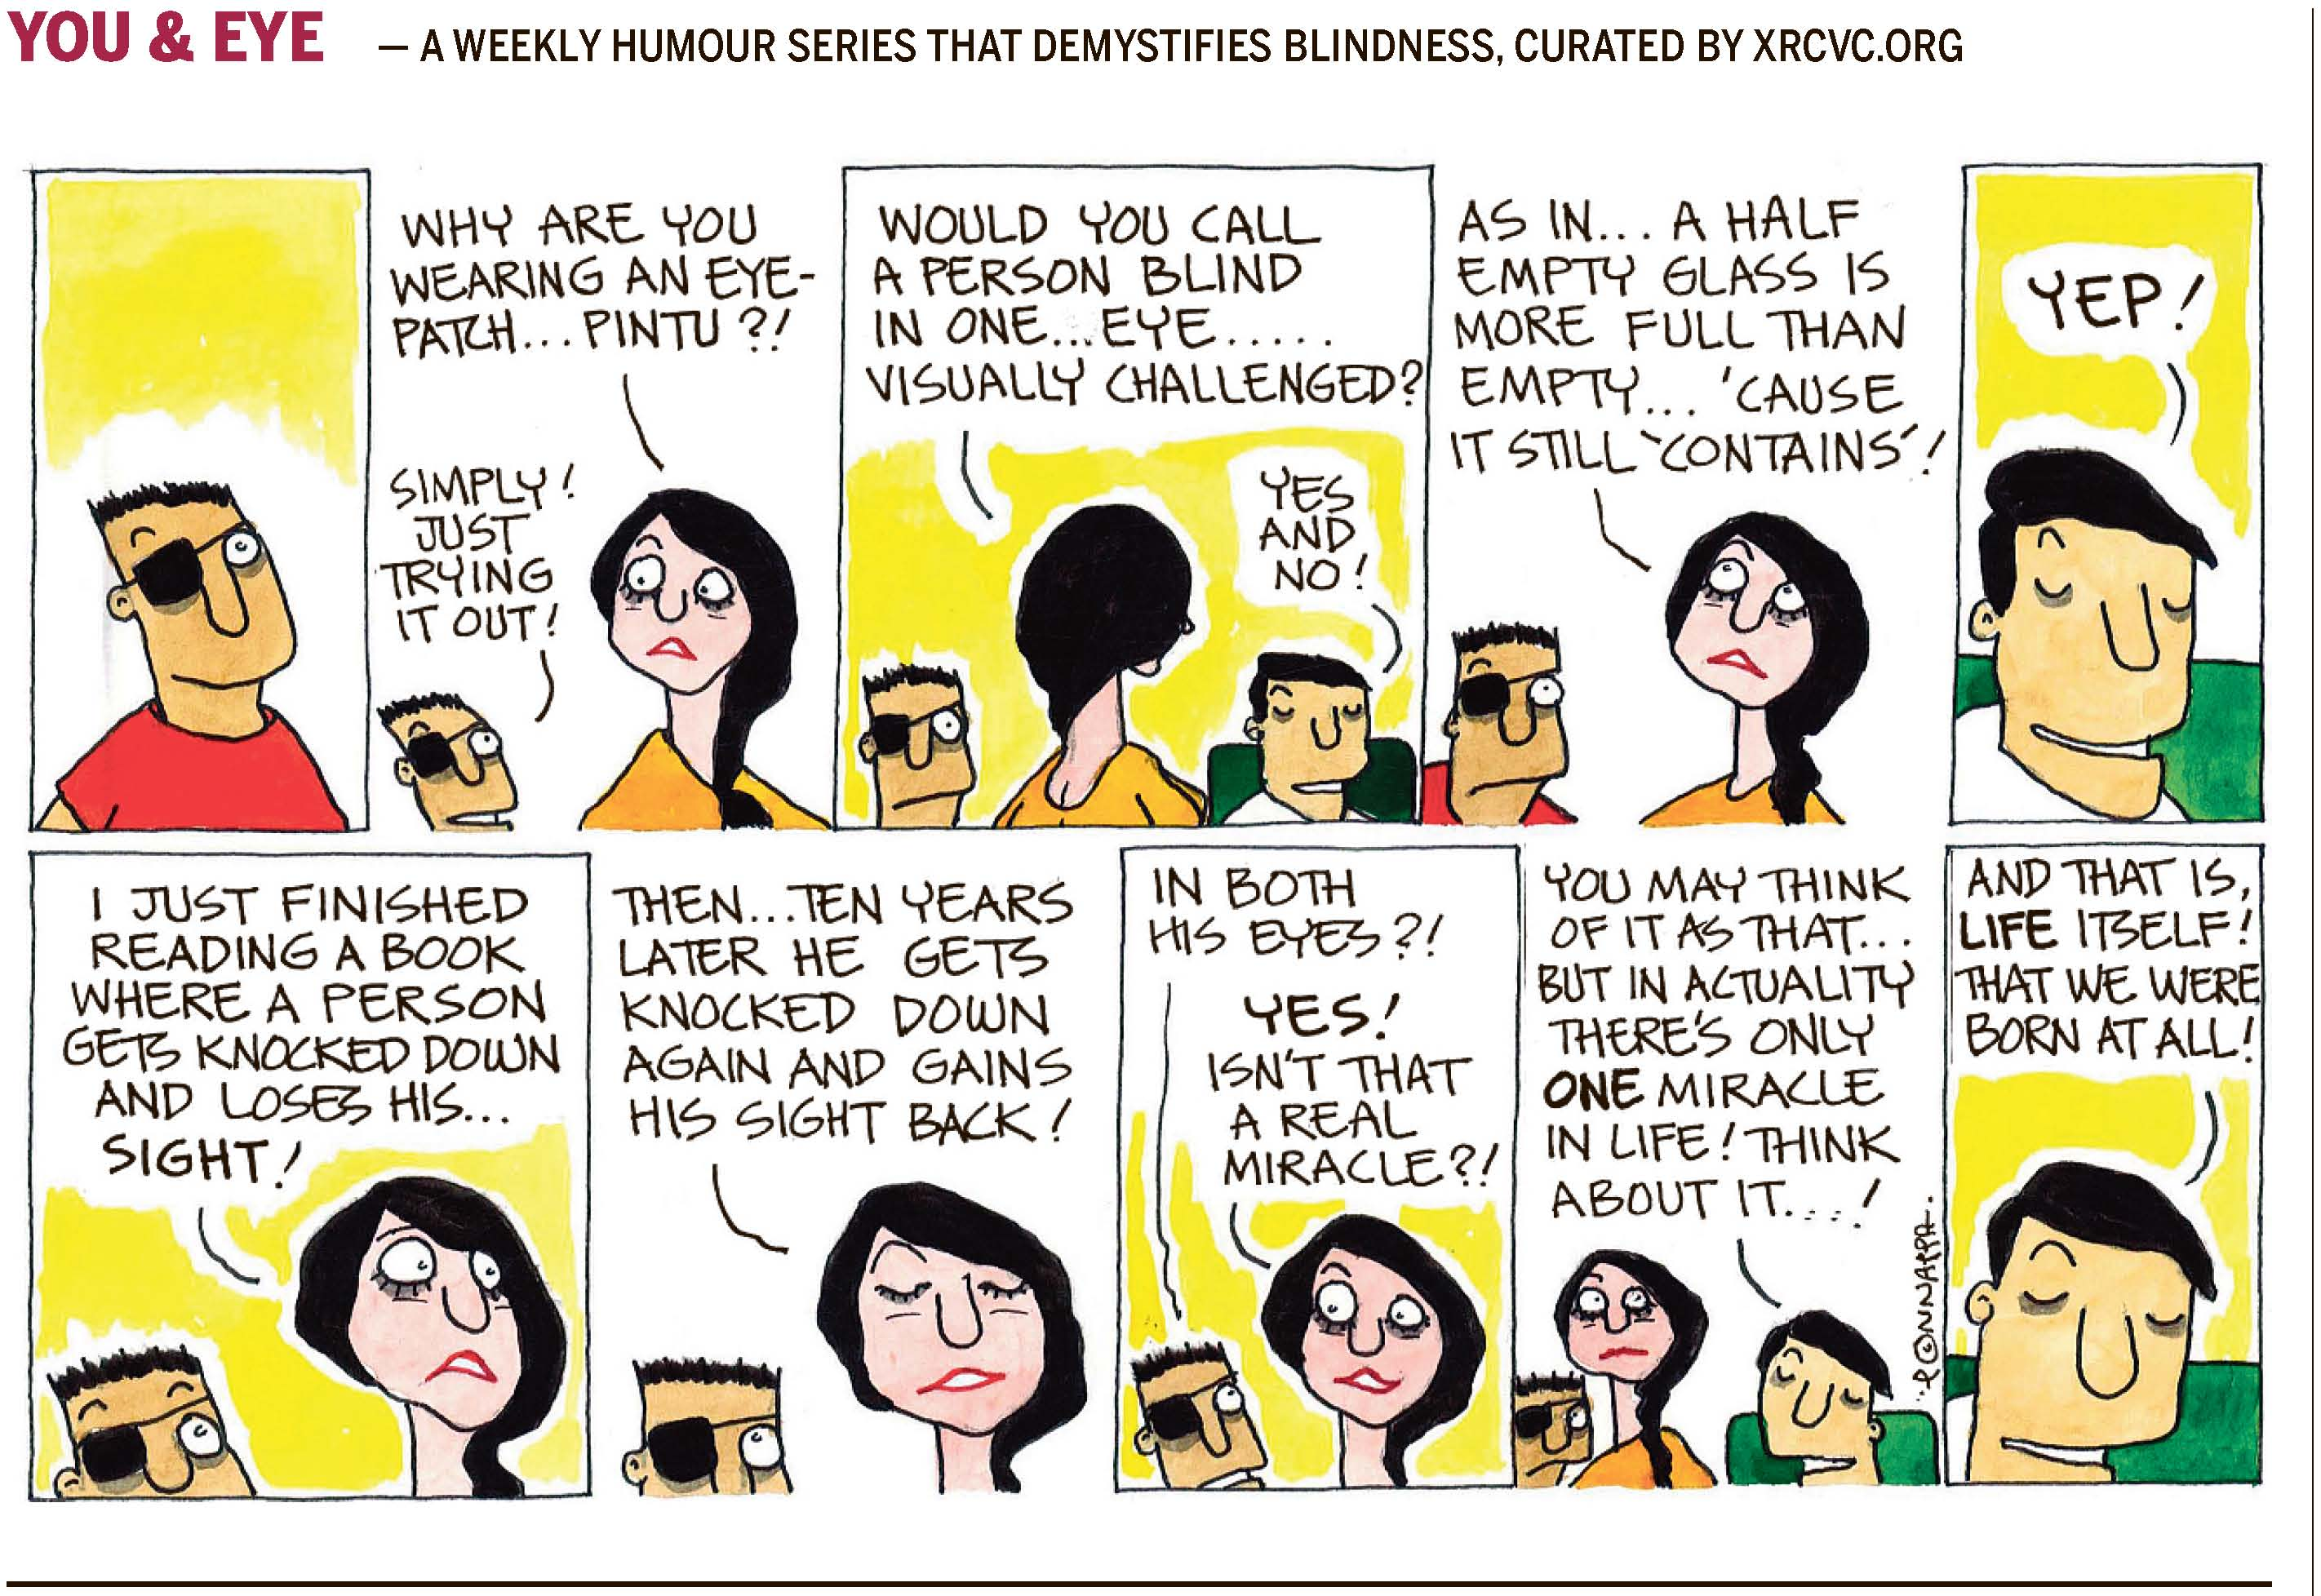 (top-left) 42 | TIMEPASS (top-right) mid-day Sunday, January 15, 2017 YOU & EYE – A WEEKLY HUMOUR SERIES THAT DEMYSTIFIES BLINDNESS, CURATED BY XRCVC.ORG Image description: A cartoon strip with 10 frames… Frame 1: BG's nephew, Pintu, is wearing a black eye-patch over his right eye. His left eye is open and he is smiling slightly.) Frame 2: (BG's friend, Tippy, appears  surprised with her eyebrows raised as she looks backwards at Pintu wearing the eye-patch.) Tippy: Why are you wearing an eye-patch… Pintu?! Pintu: Simply! Just trying it out! Frame 3: (Tippy is seen from the back looking towards BG who is seated on the right while Pintu is standing on the left.) Tippy: Would you call a person blind in one… eye… visually challenged? BG: Yes and no! Frame 4: (Tippy appears absorbed as she looks upwards towards the right, while Pintu, who is wearing the eye-patch looks on.) Tippy: As in… a half empty glass is more full than empty… 'cause it still 'contains'! Frame 5: (A close-up of BG smiling) BG: Yep! Frame 6: (Tippy appears puzzled with eyes wide open, while Pintu, who is wearing the eye-patch looks on with his eyebrows raised. Only the top-half of his face can be seen.) Tippy: I just finished reading a book where a person gets knocked down and loses his… sight! Frame 7: (Tippy appears straight-faced with eyes shut, while Pintu, who is wearing the eye-patch looks upwards. Only the top-half of his face can be seen.) Tippy: Then… ten years later he gets knocked down again and gains his sight back! Frame 8: (Tippy smiles at Pintu, who is wearing the eye-patch and looking towards Tippy.) Pintu: In both his eyes?! Tippy: Yes! Isn't that a real miracle?! Frame 9: (Both – Pintu & Tippy – appear confused as they look towards BG.) BG: You may think of it as that… but in actuality there's only ONE miracle in life! Think about it…! Frame 10: (A close-up of BG smiling) BG: And that is, LIFE itself! That we were born at all! (Signed Ponnappa, in Frame 9)